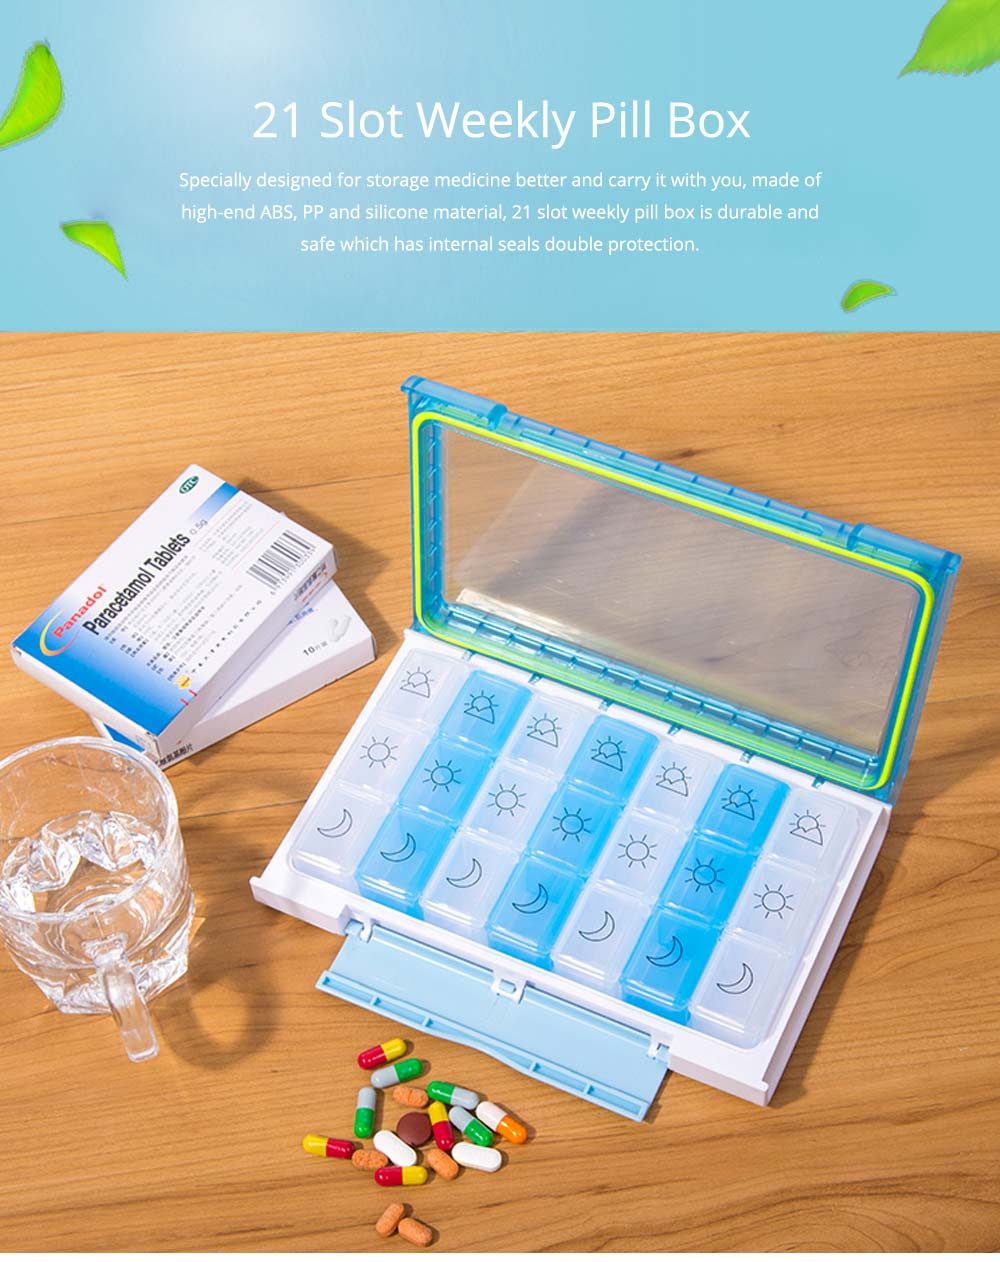 7 Day 21 Slot Weekly Pill Box Medicine Tablet Holder Dispenser, Weekly AM/PM Pill Organizer Box with Snap Lids 0